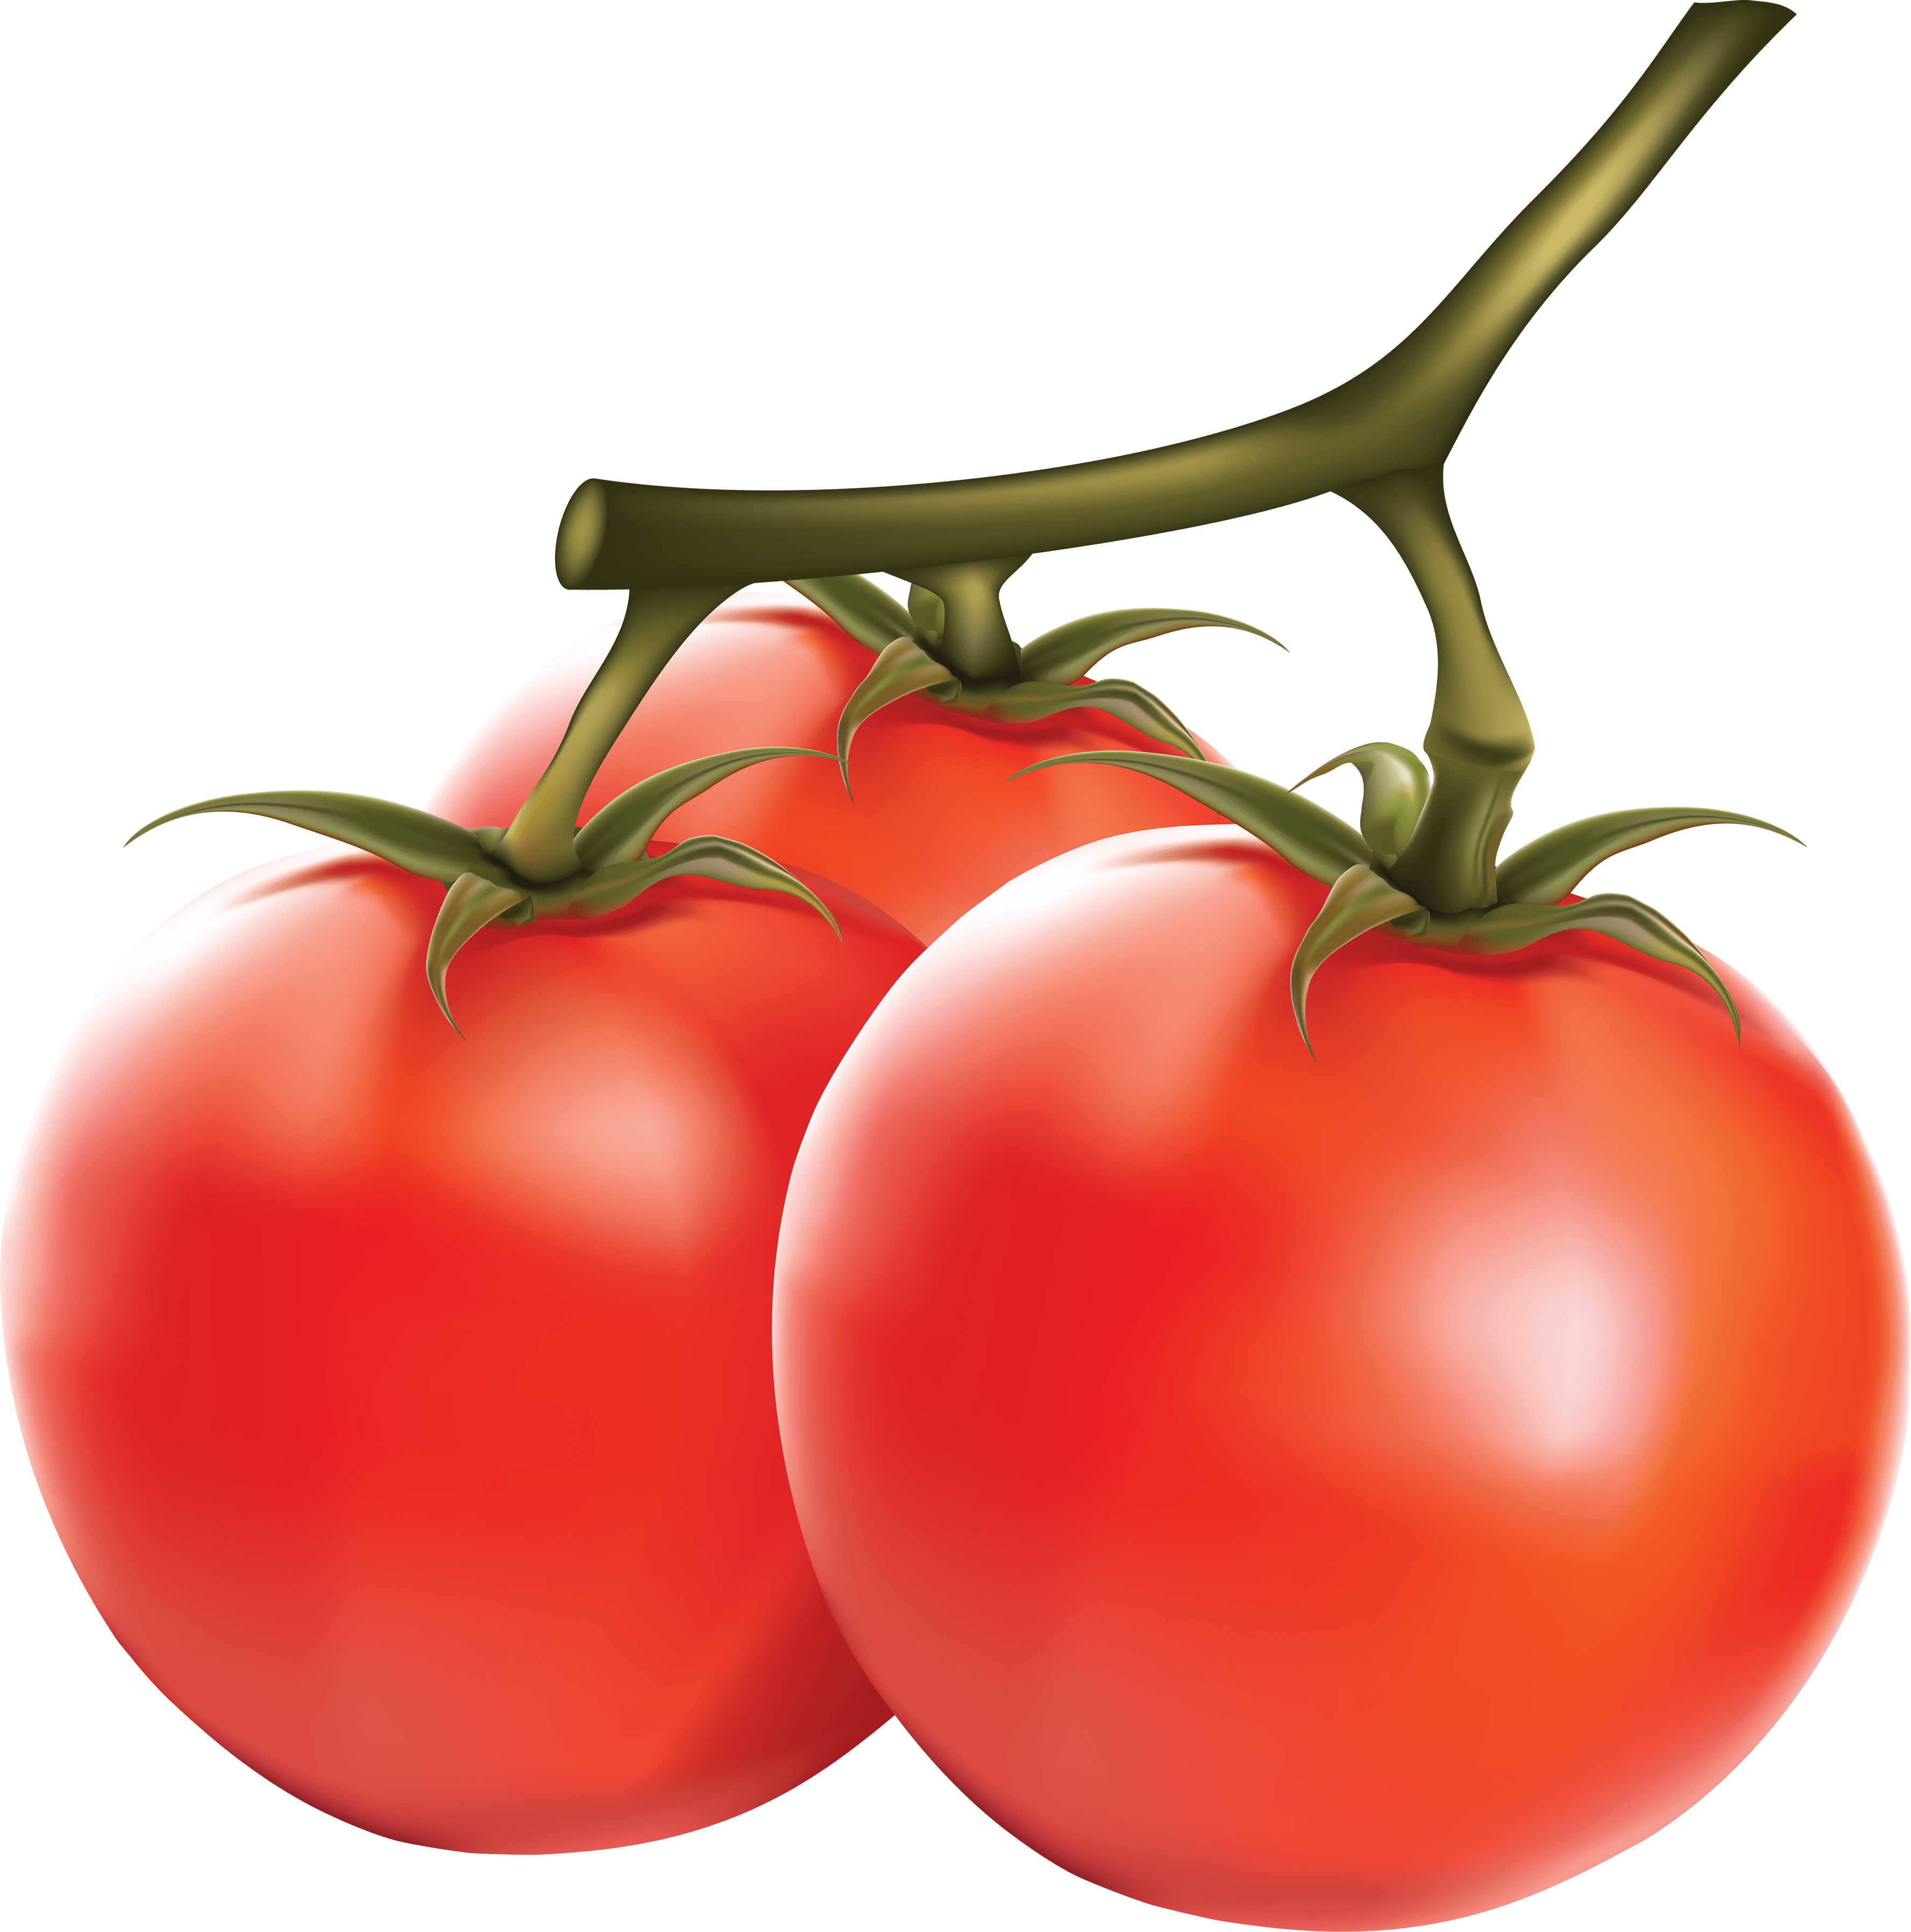 Tomato PNG - 4797